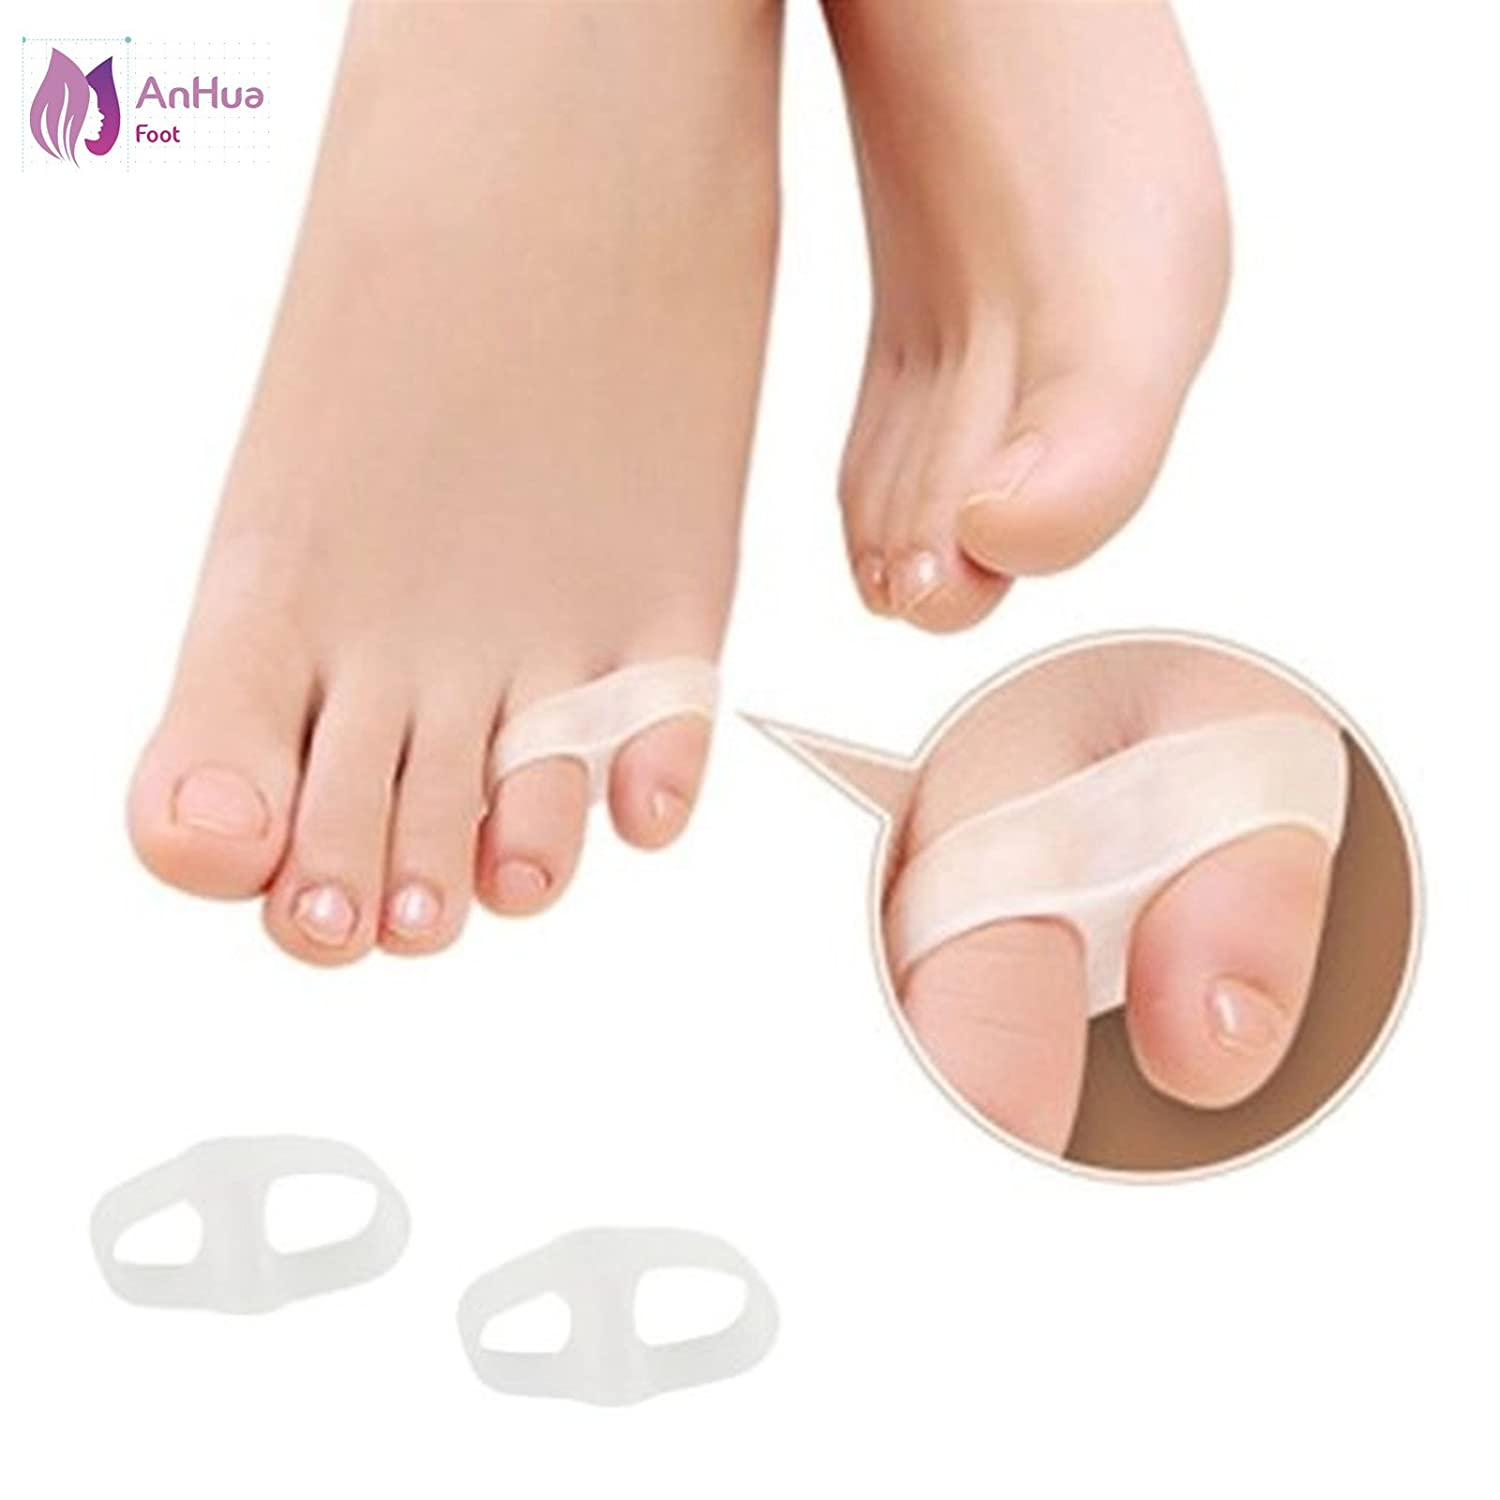 AnHuaUnisex Small Toe Soft Silicone 2 Holes Orthotics Bunion Tail Toe Straightener Separator Shield Protector Spreader Corrector Adjuster Foot Pain Relief by Healtheveryday GH35